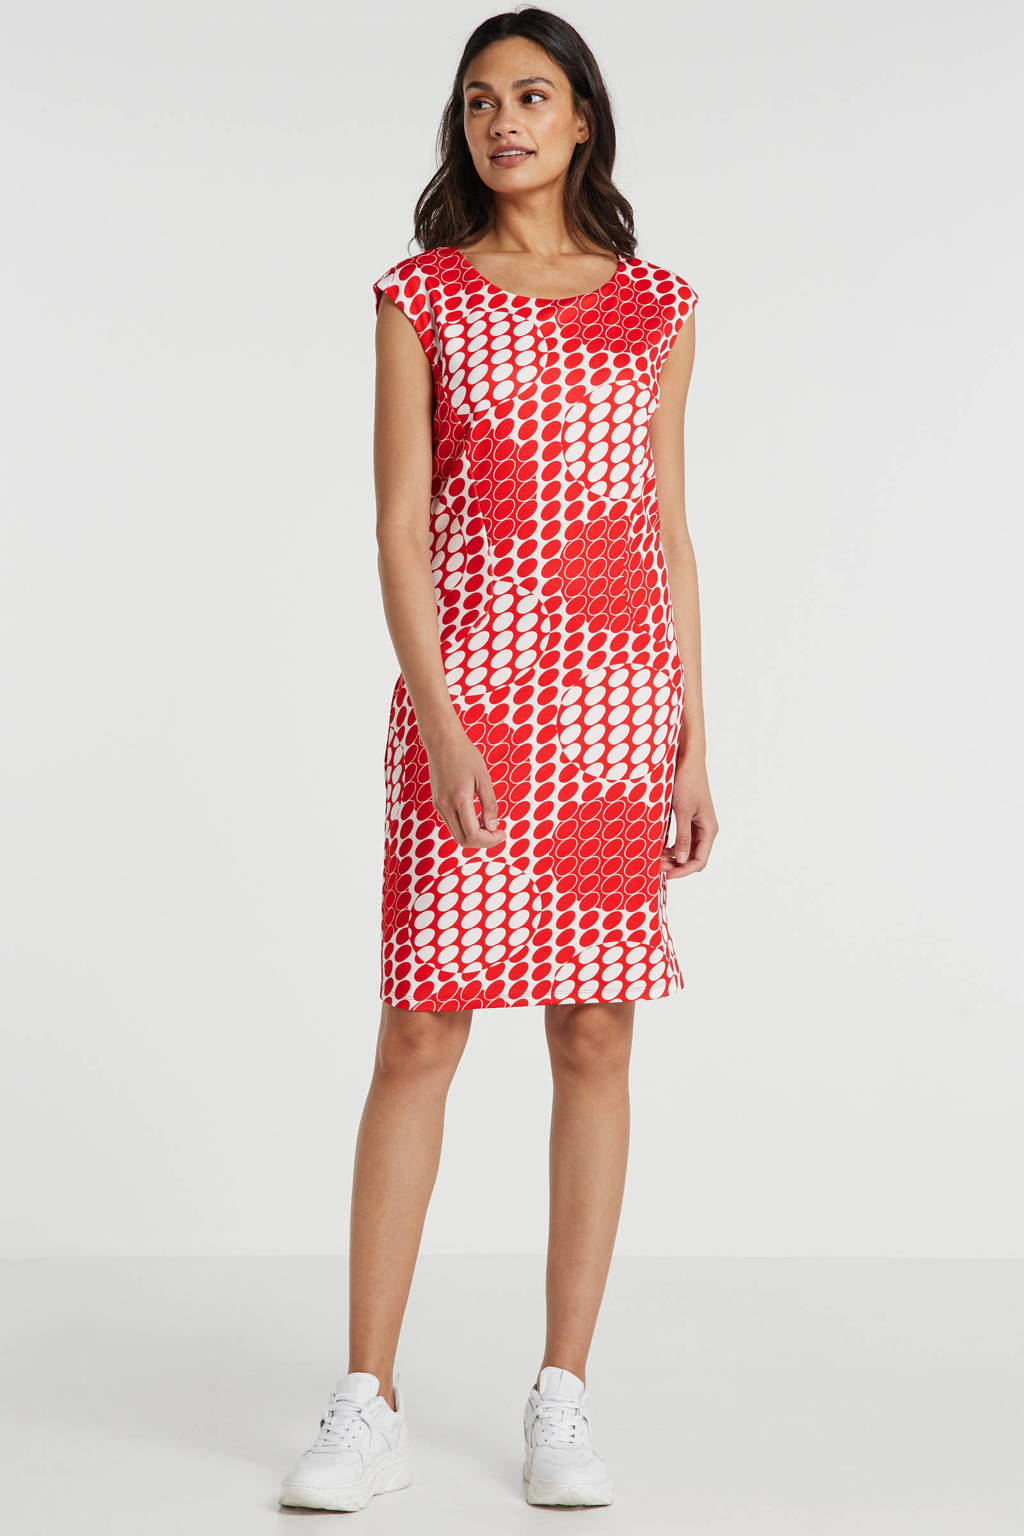 Smashed Lemon jersey jurk met all over print en plooien rood/wit, Rood/wit